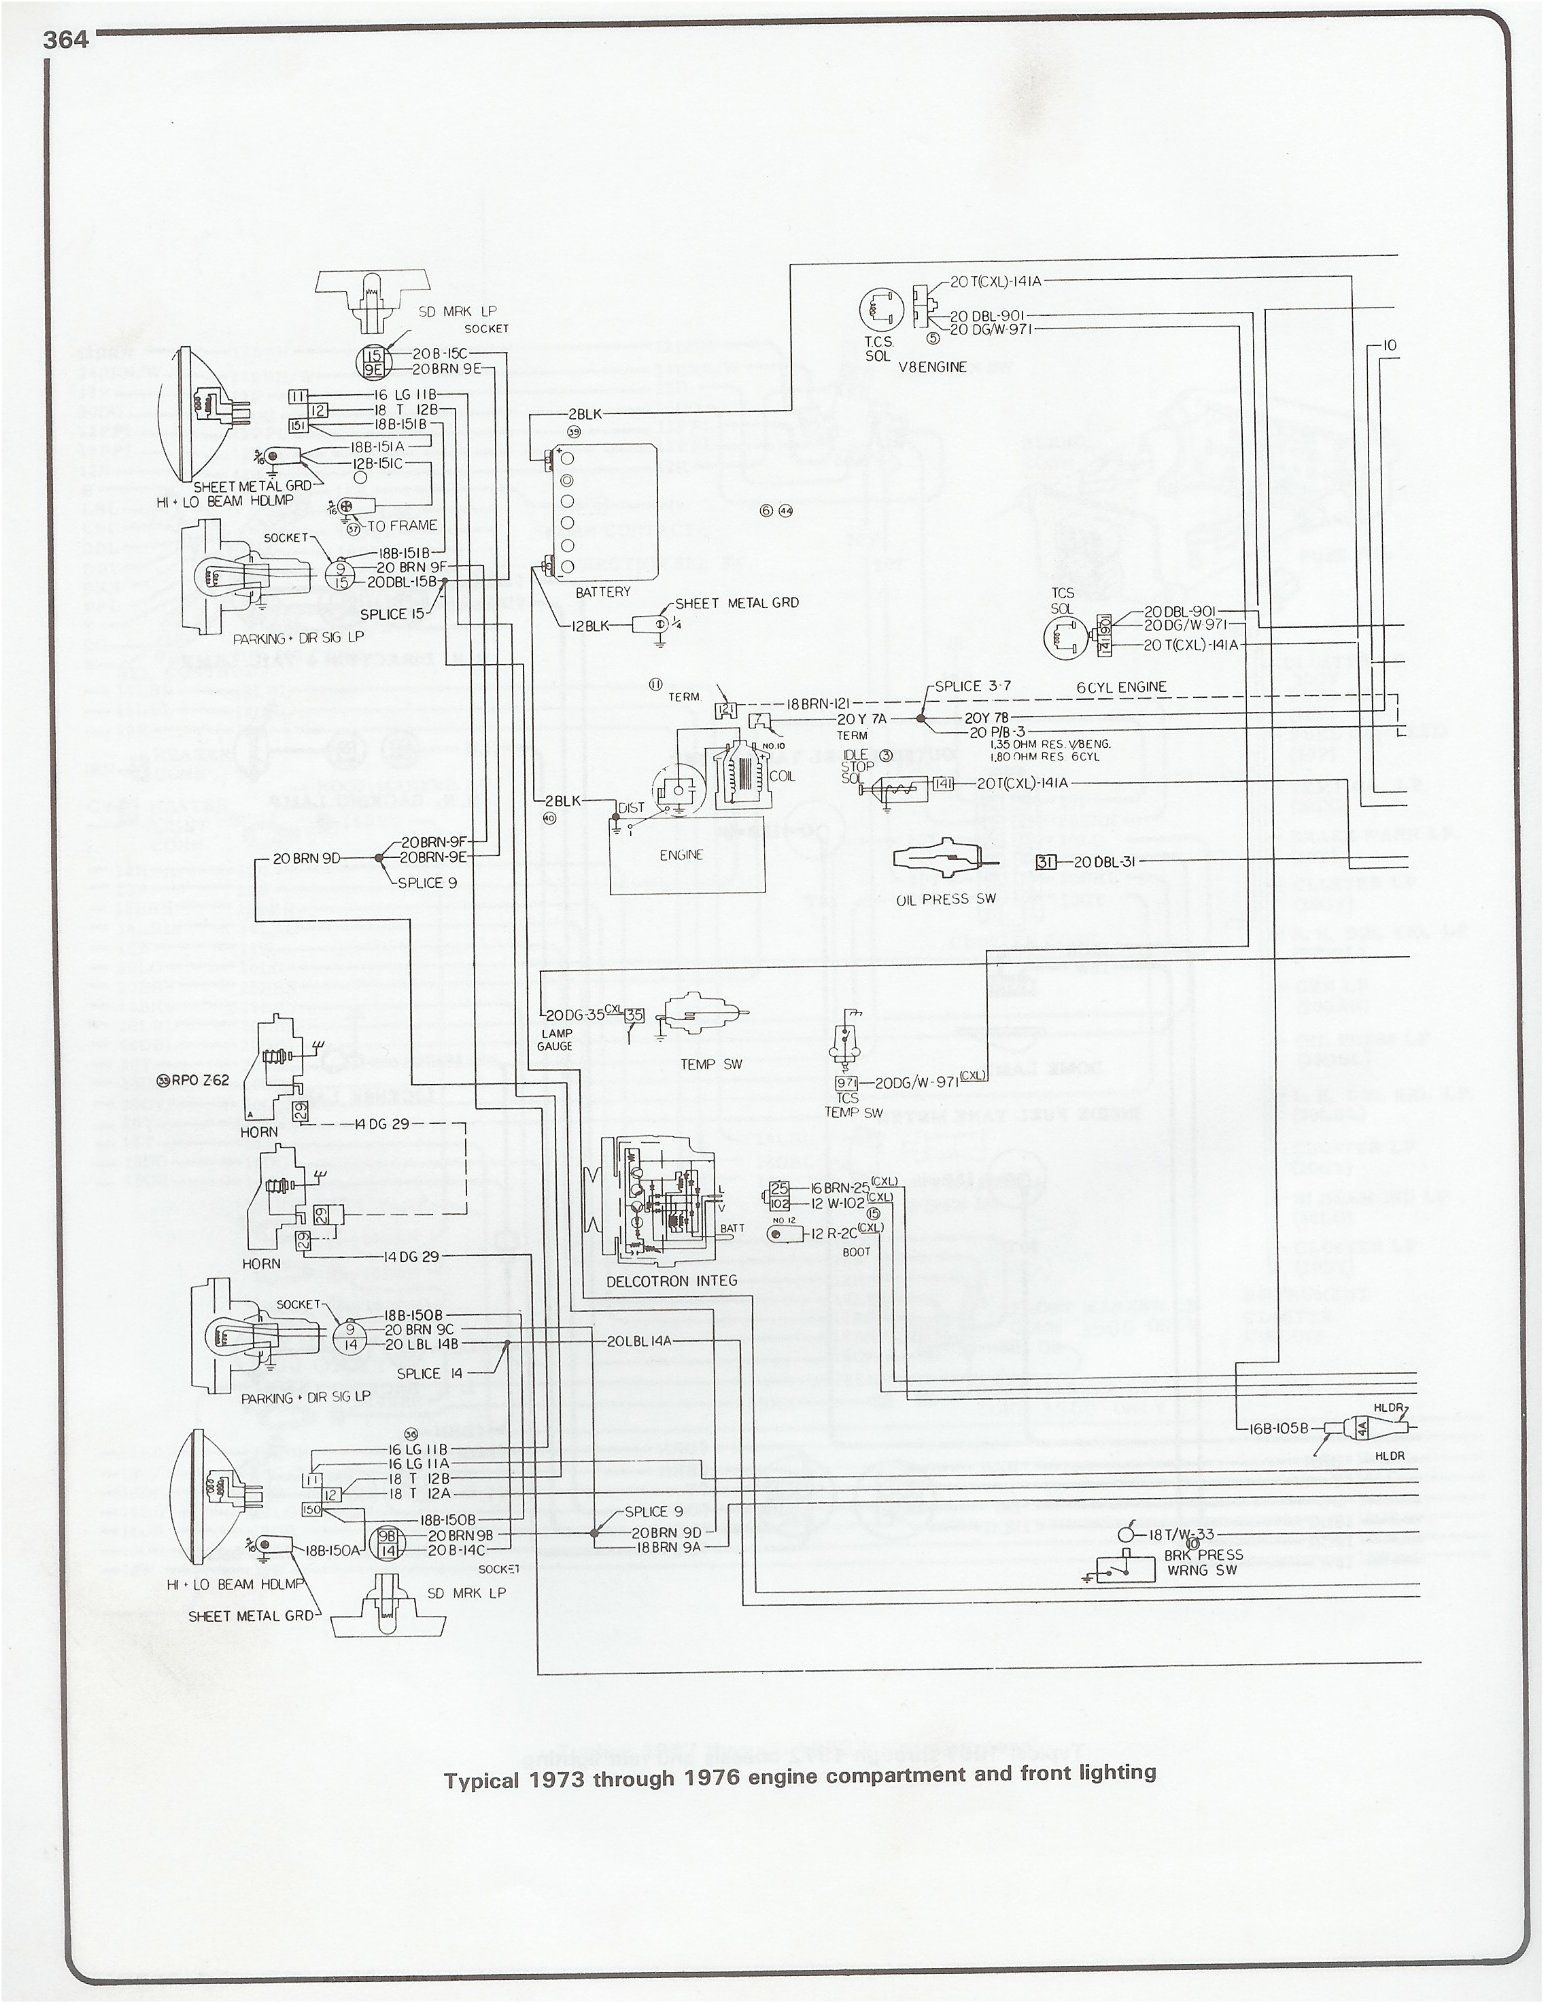 hight resolution of wiring diagram 1973 1976 chevy pickup chevy wiring diagram chevrolet wiring basic starting wiring diagram 1973